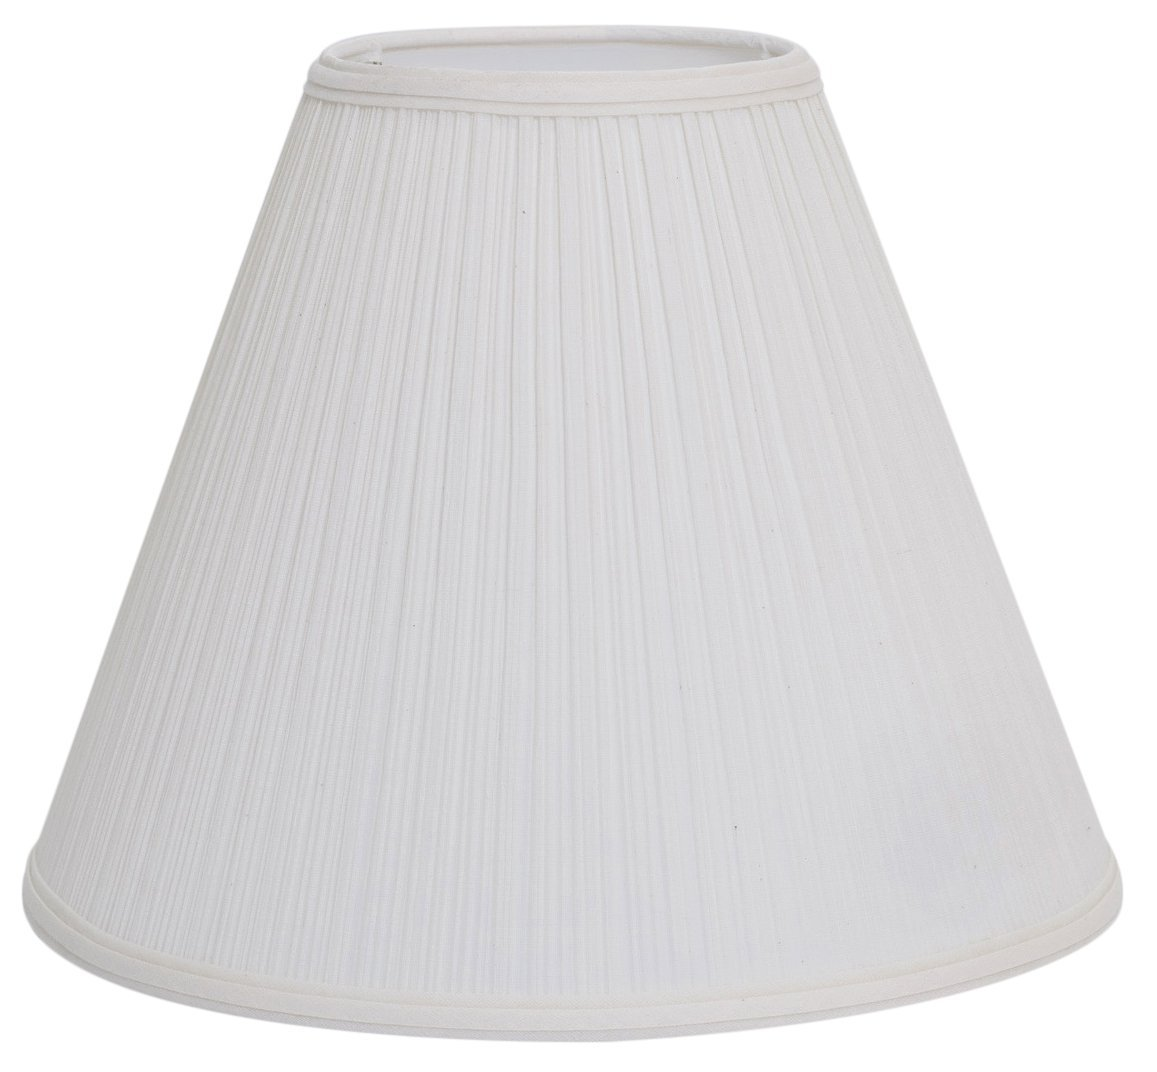 "Deran 401-14-NA 14"" Mushroom Pleat Empire Lamp Shade, 6"" x 14"" x 11.5"", Natural"